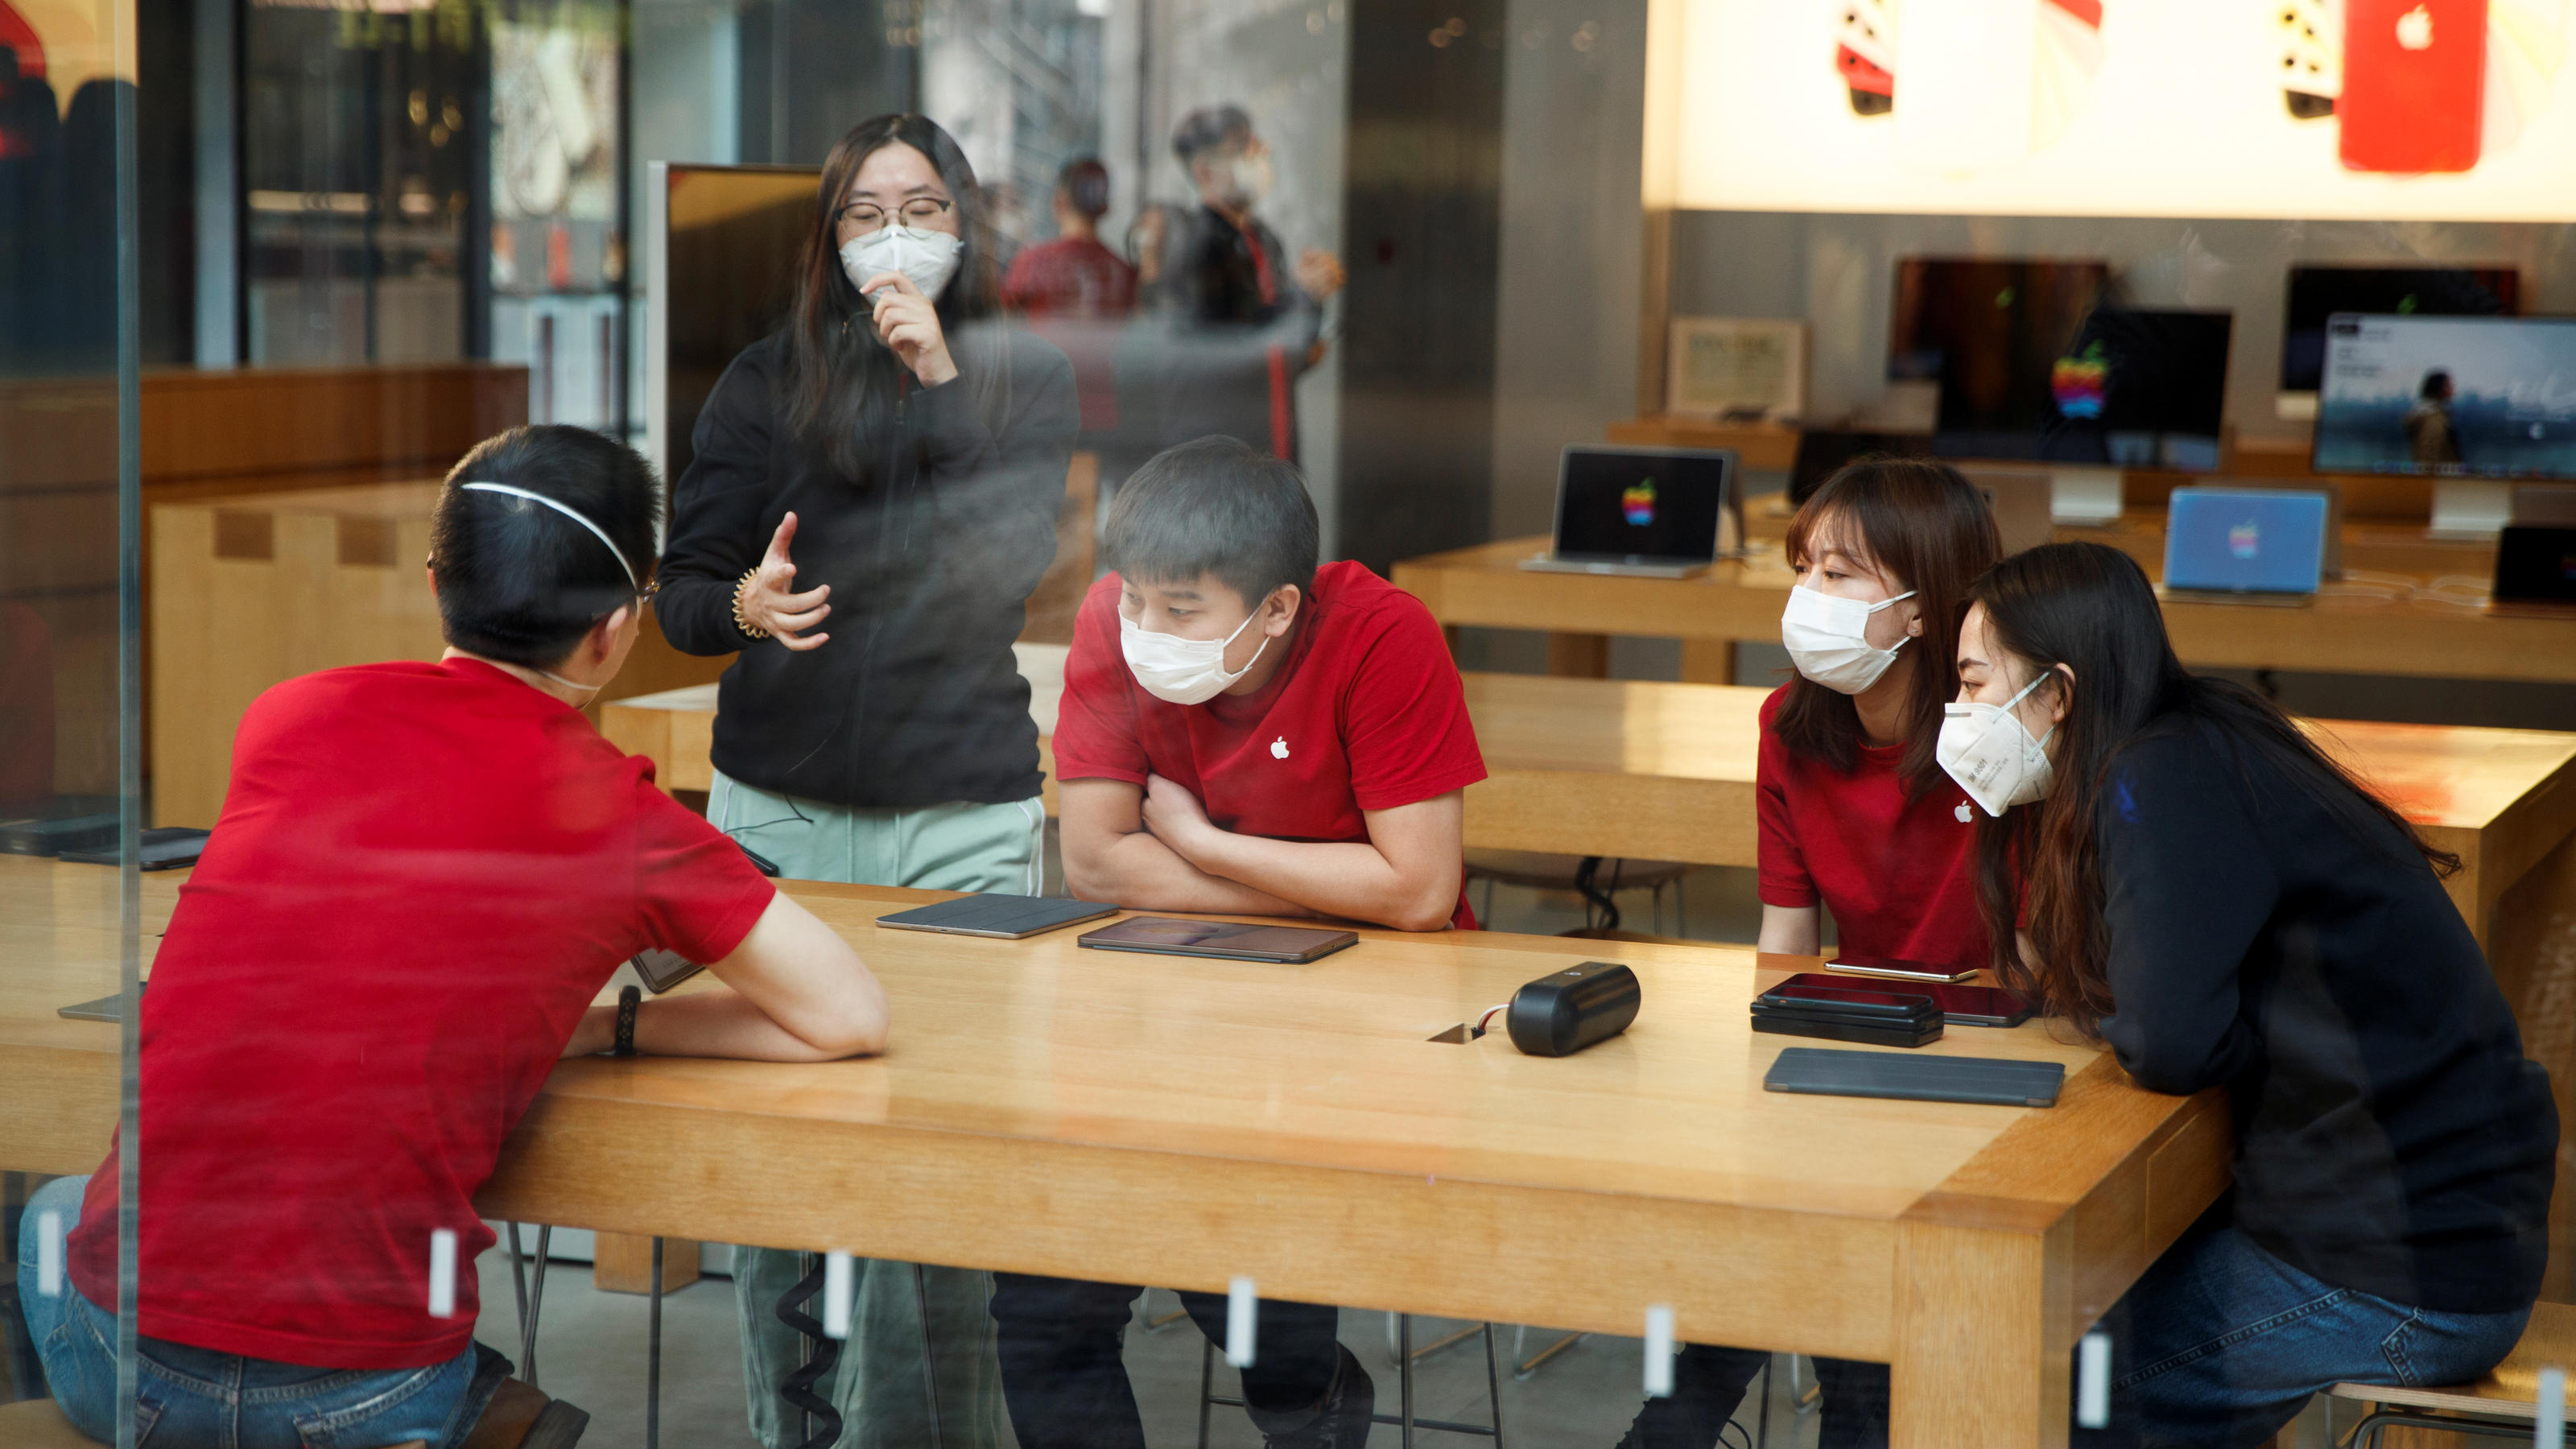 People wear face masks as they listen to a presentation in an Apple Store in the Sanlitun shopping district in Beijing as China is hit by an outbreak of the new coronavirus, January 25, 2020. Picture taken January 25, 2020.   REUTERS/Thomas Peter